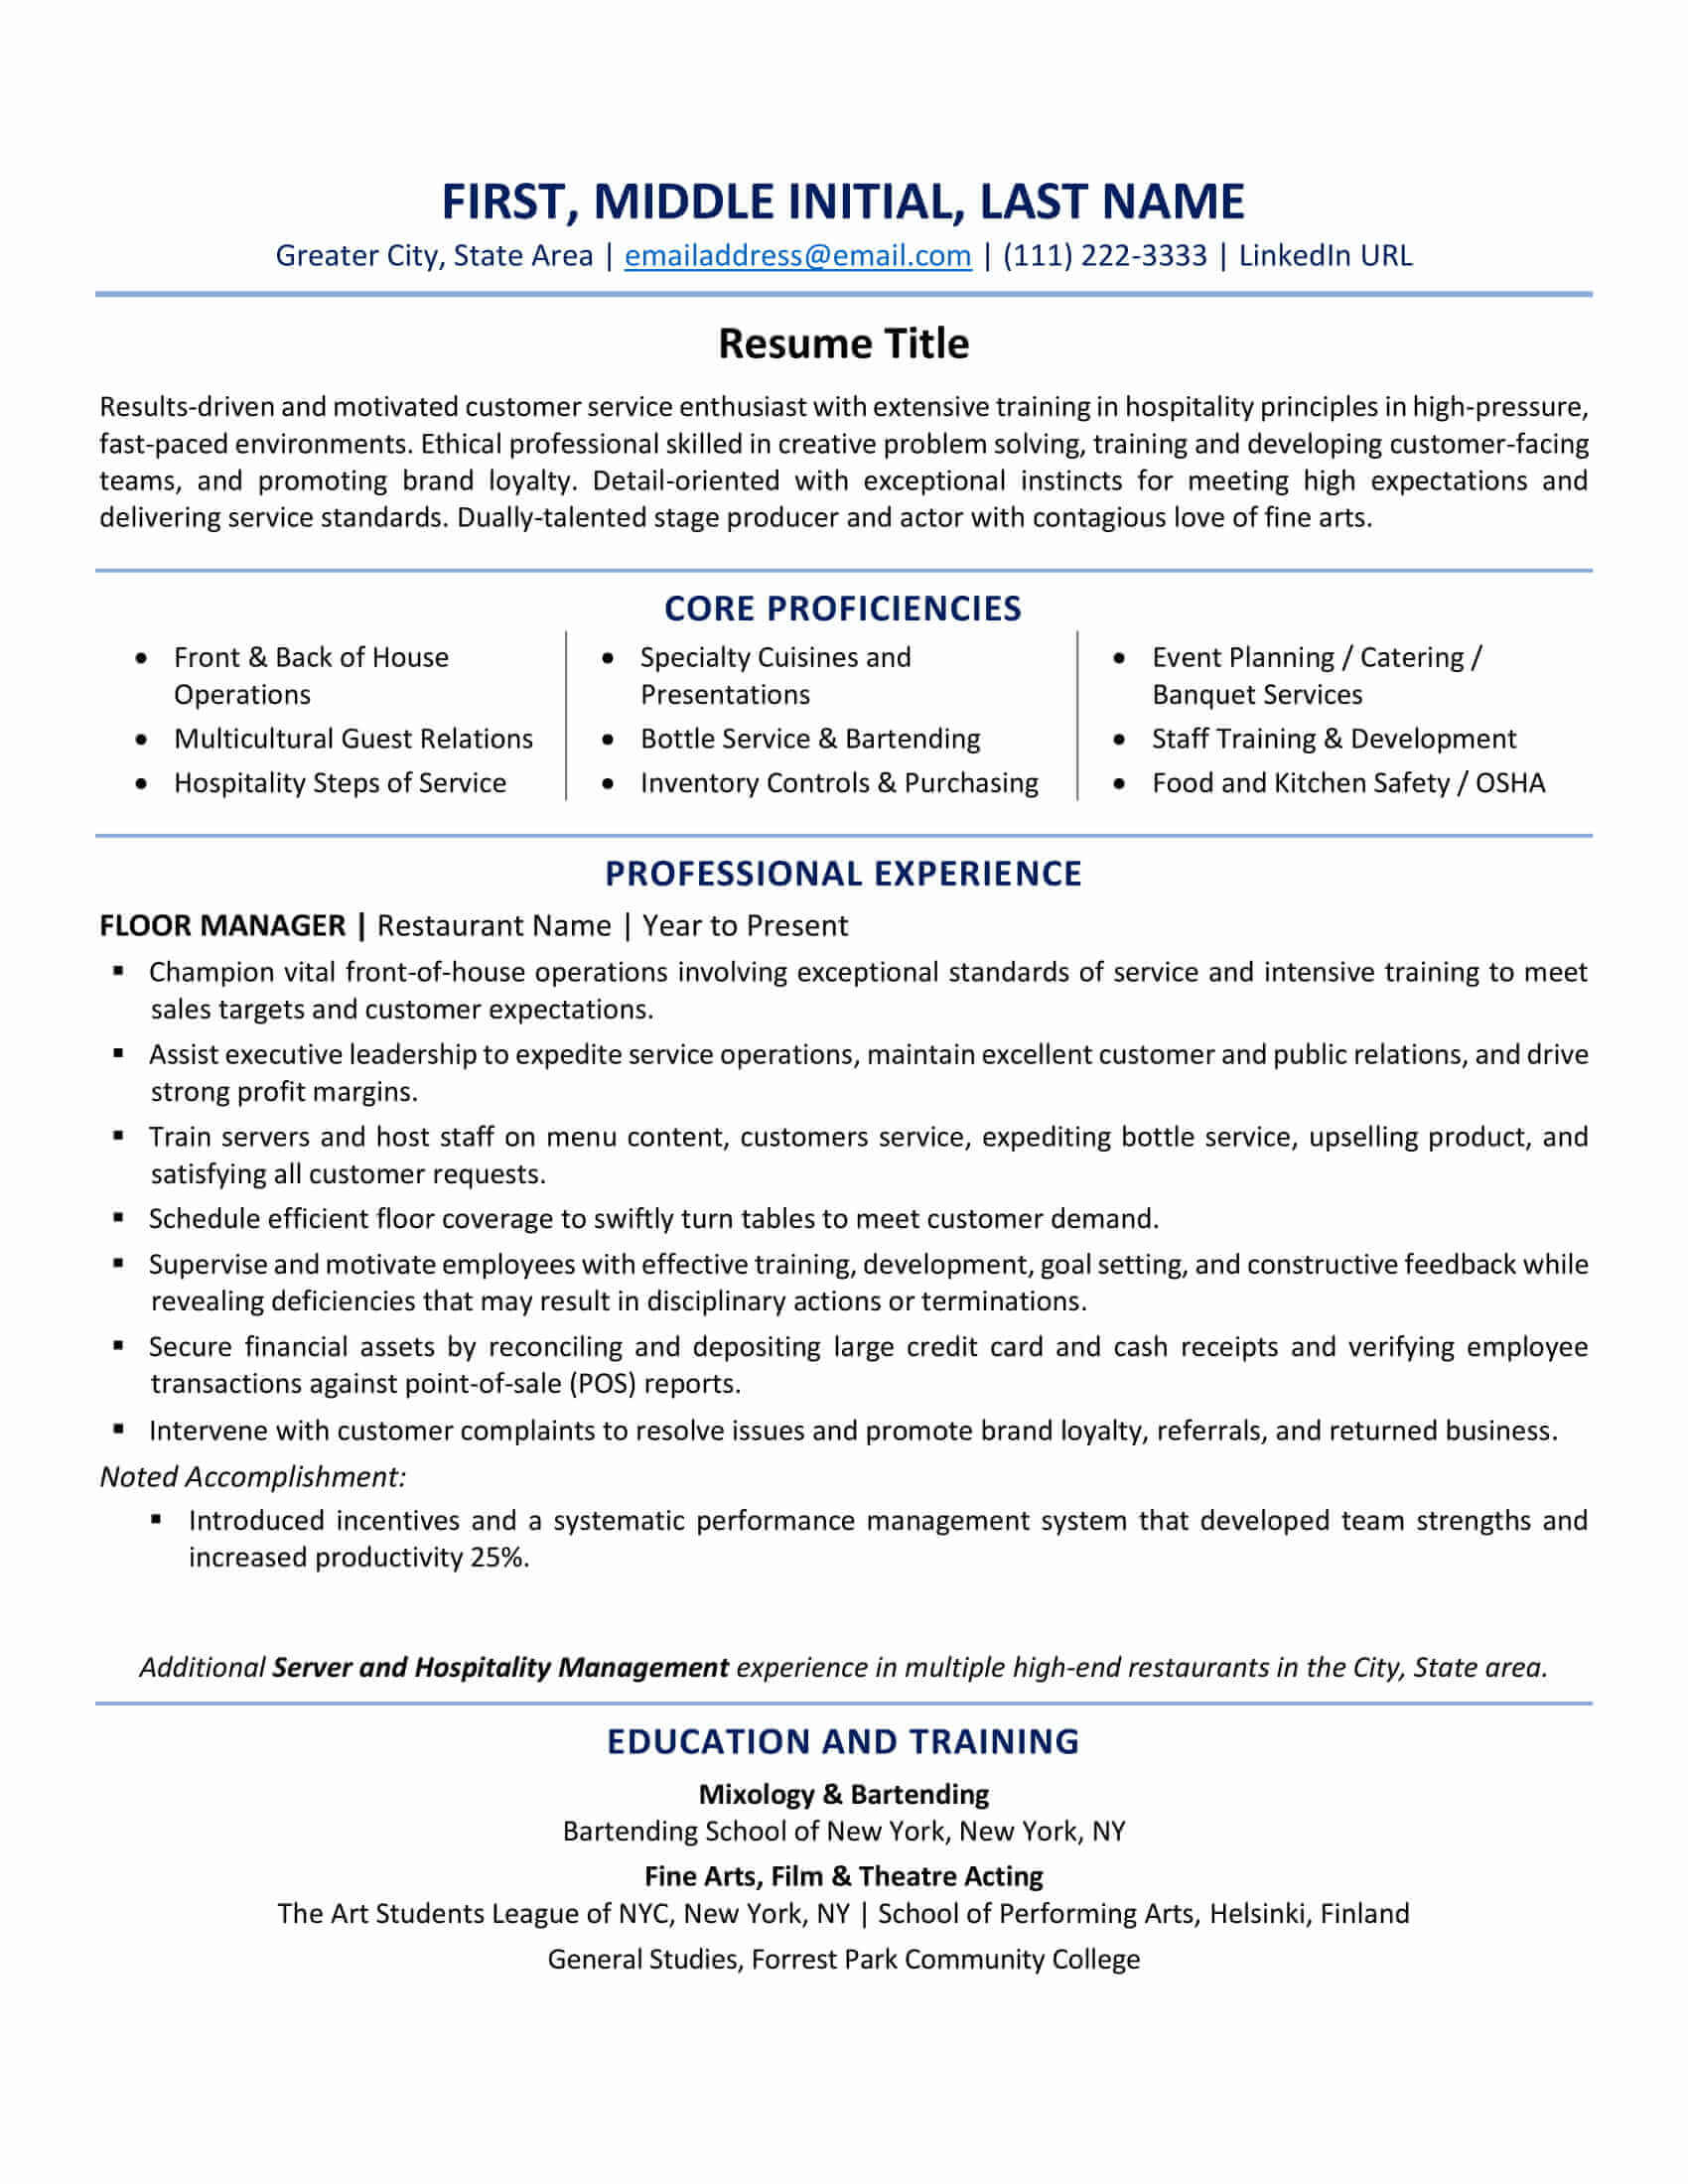 ats resume test free checker formatting examples templates when moving to the us modeling Resume Free Ats Resume Templates